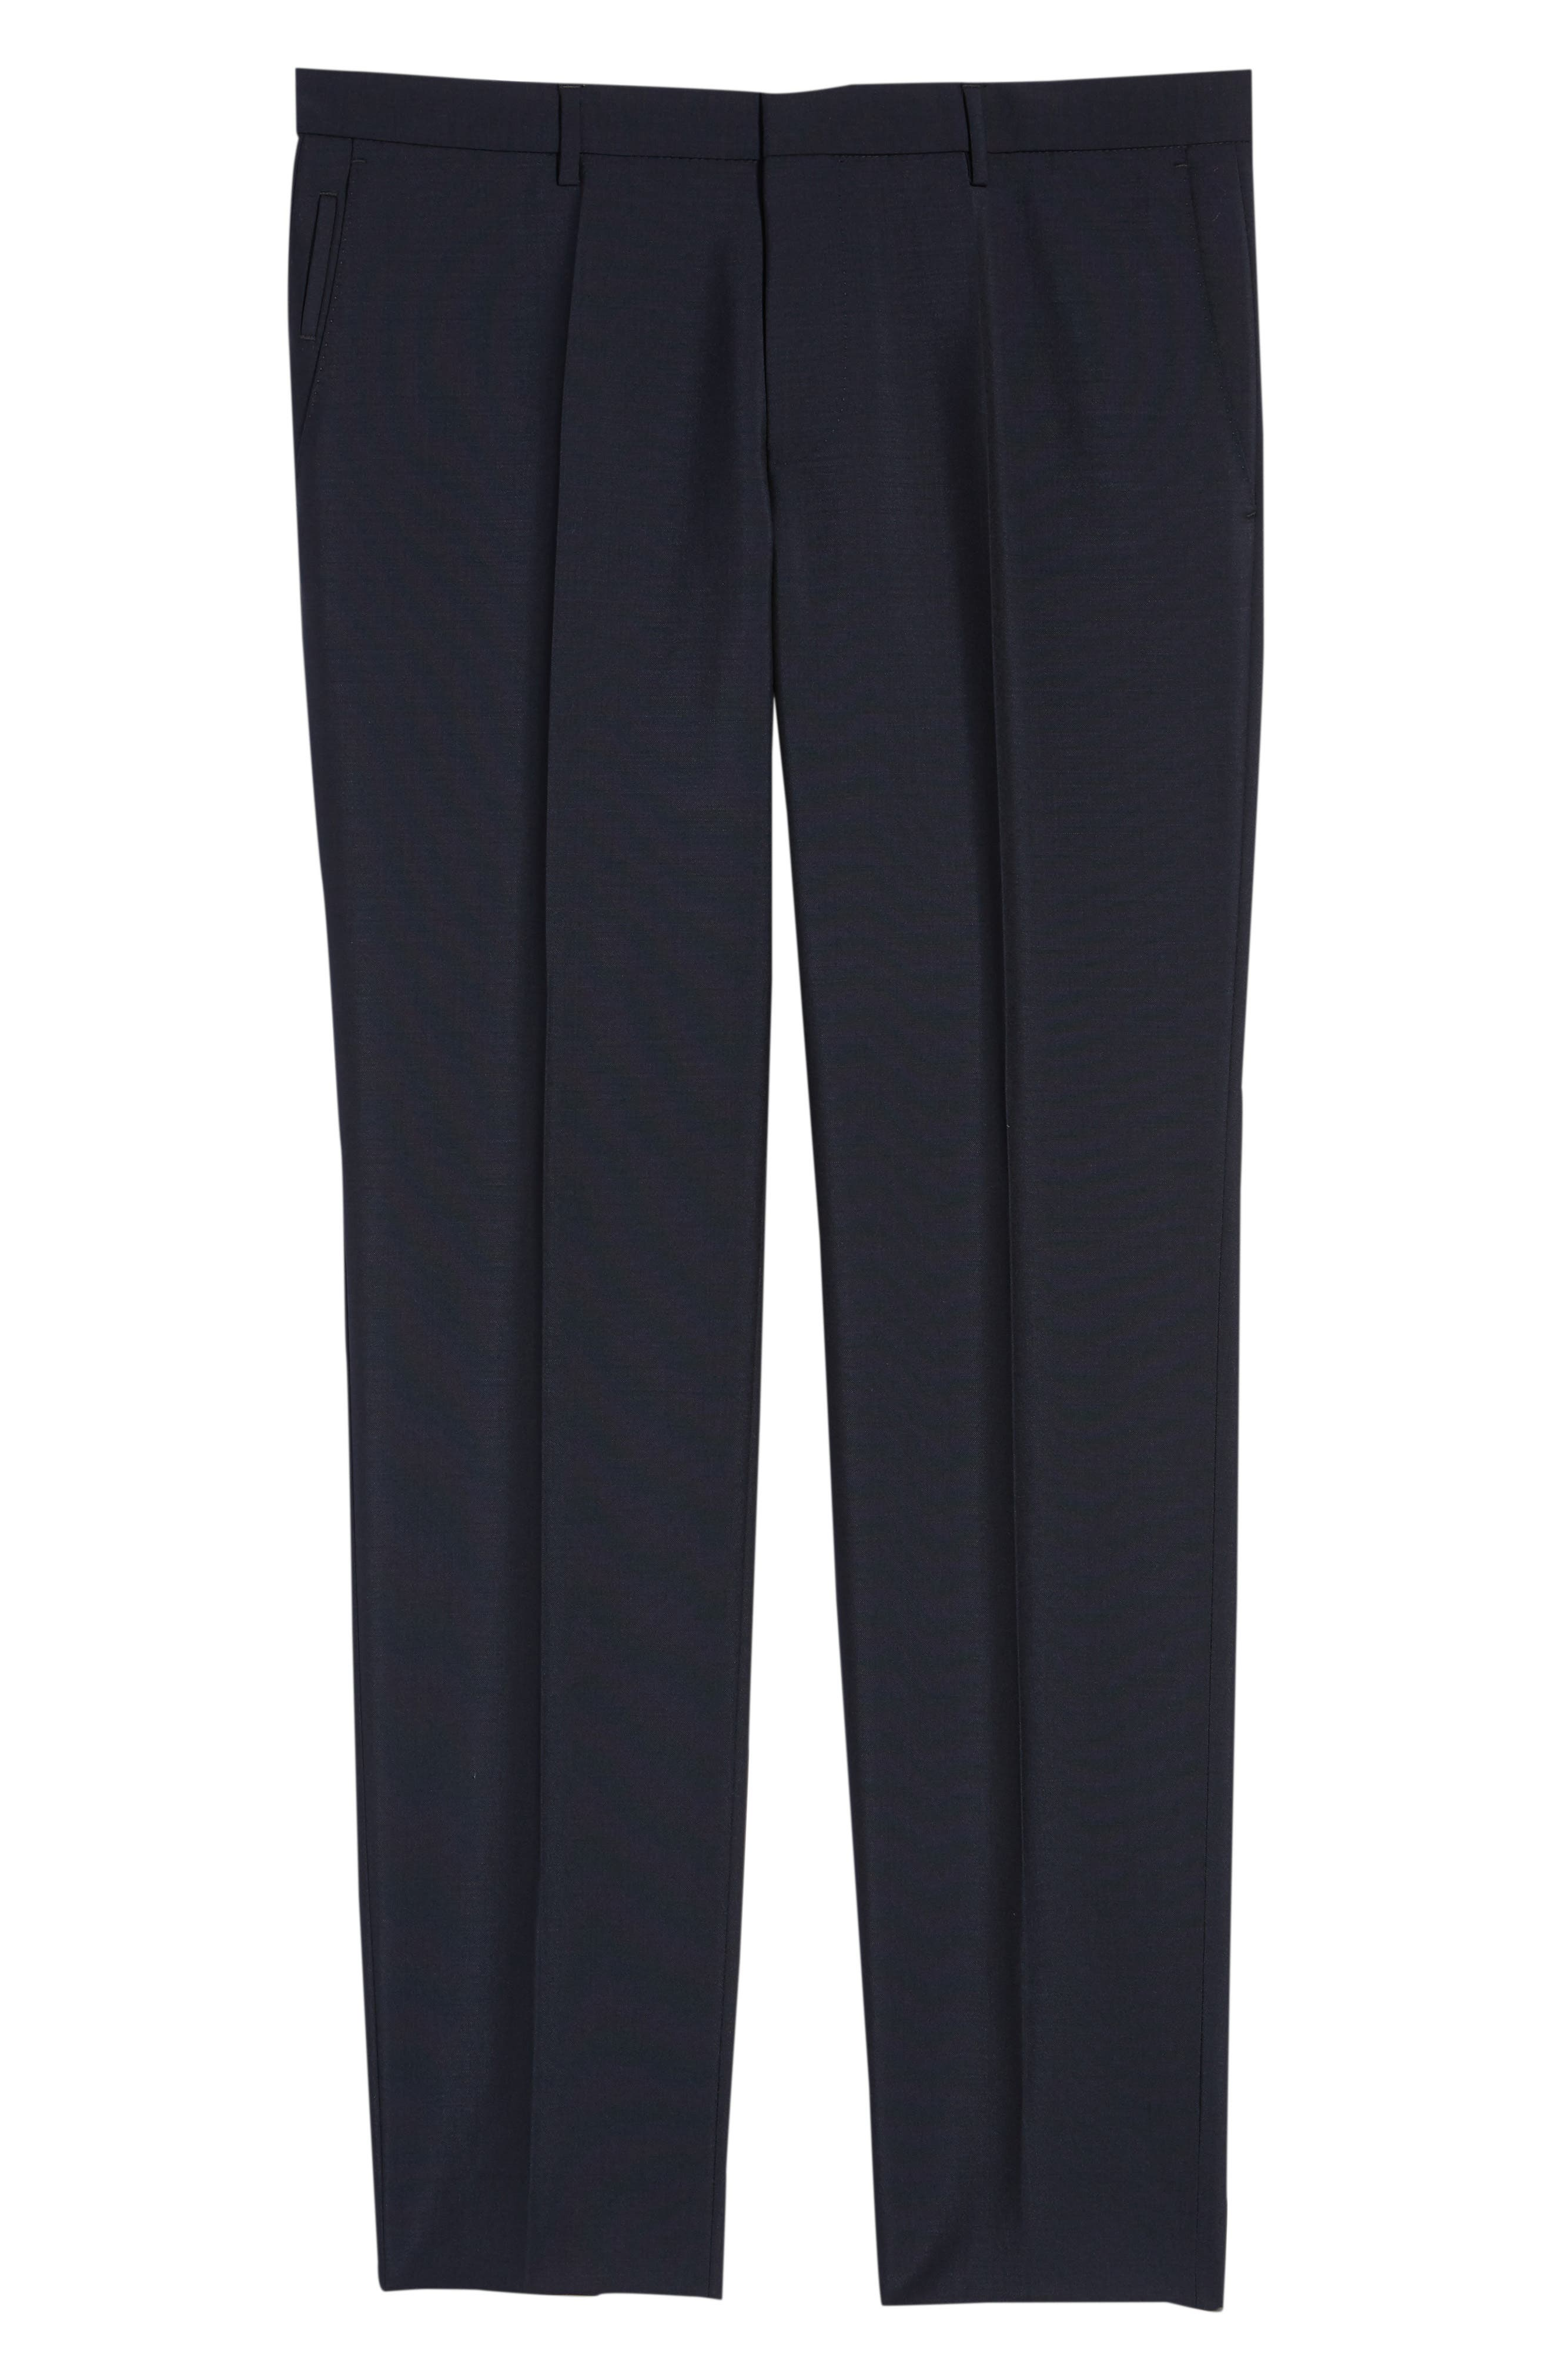 x Nordstrom Ben Flat Front Solid Wool & Mohair Trousers,                             Alternate thumbnail 6, color,                             DARK BLUE